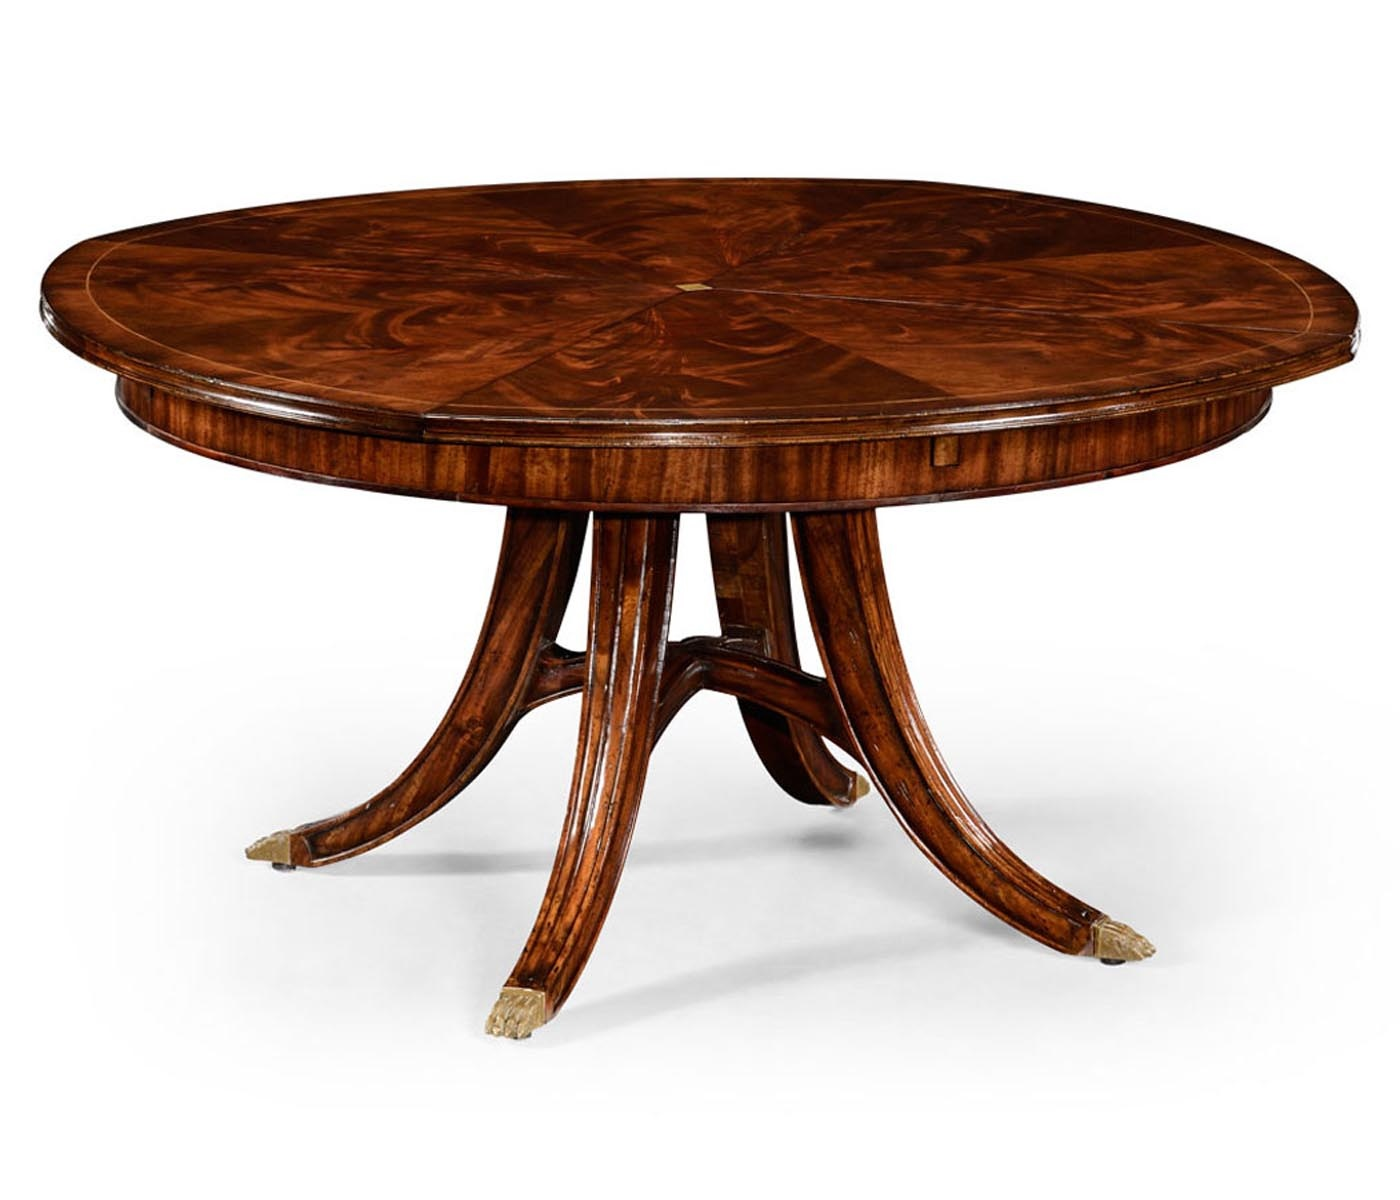 8 10 seater round extending dining table swanky interiors for Round dining table